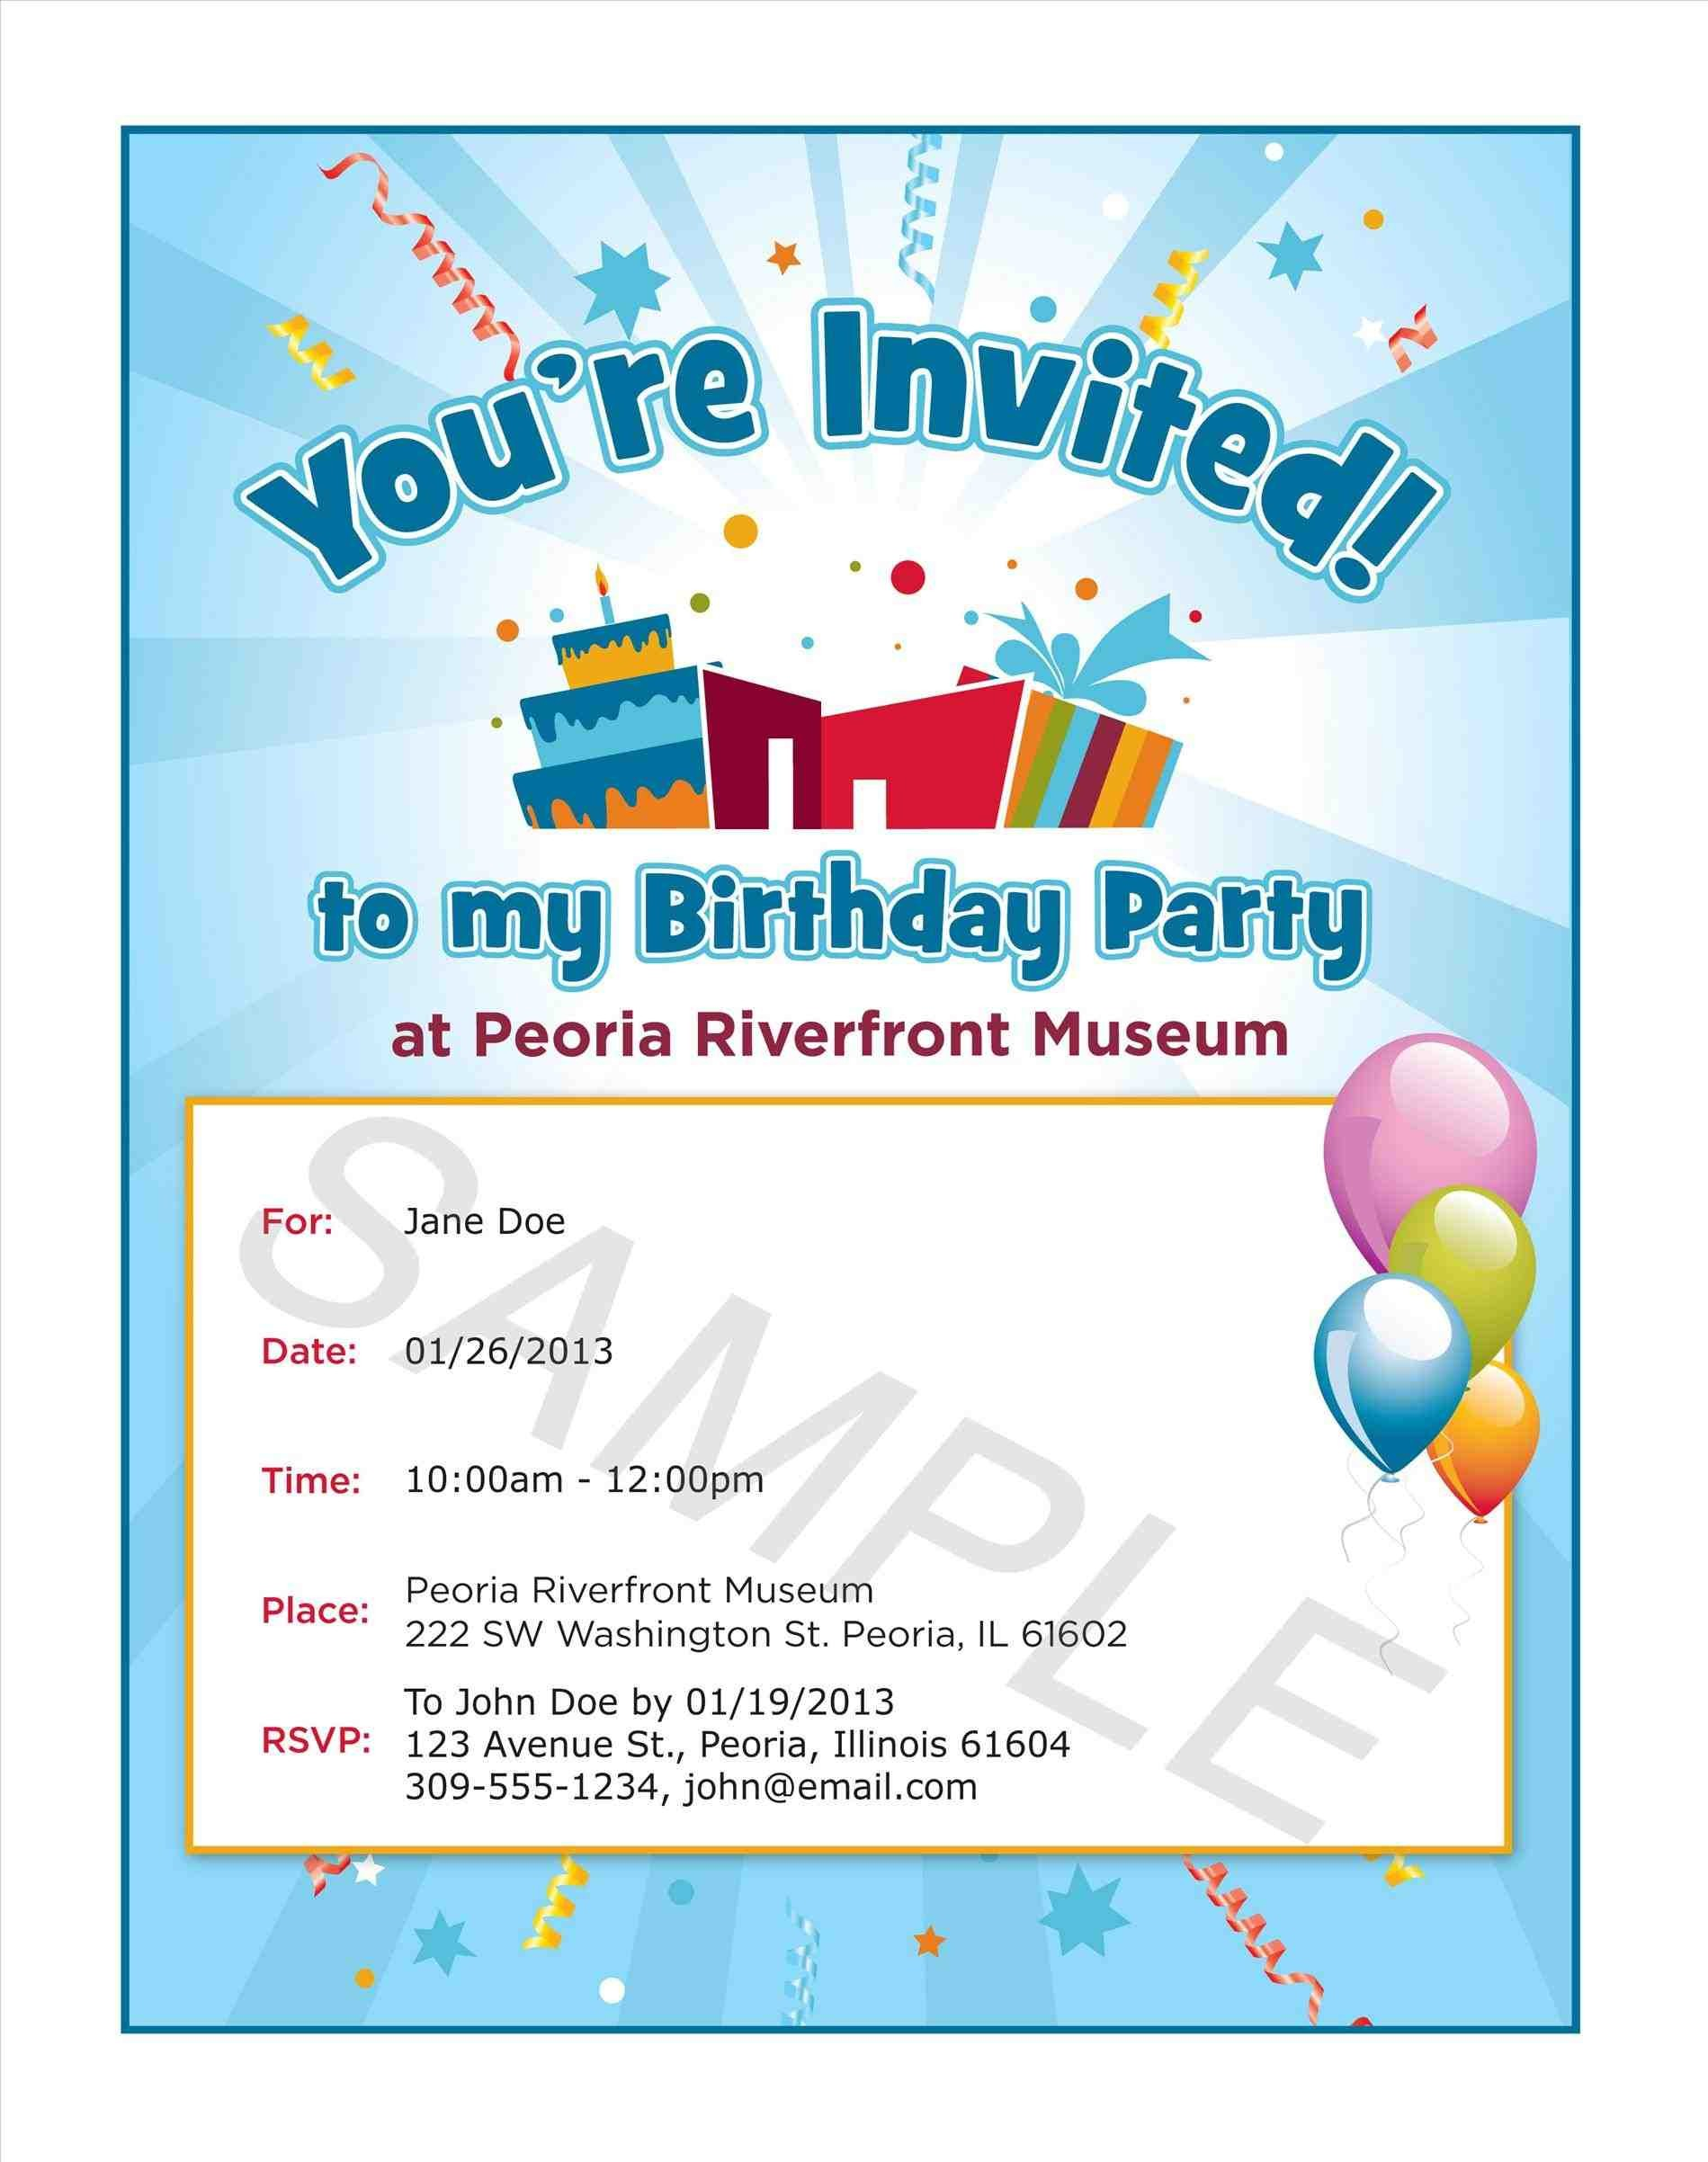 Birthday Party Invitation Sms For Save